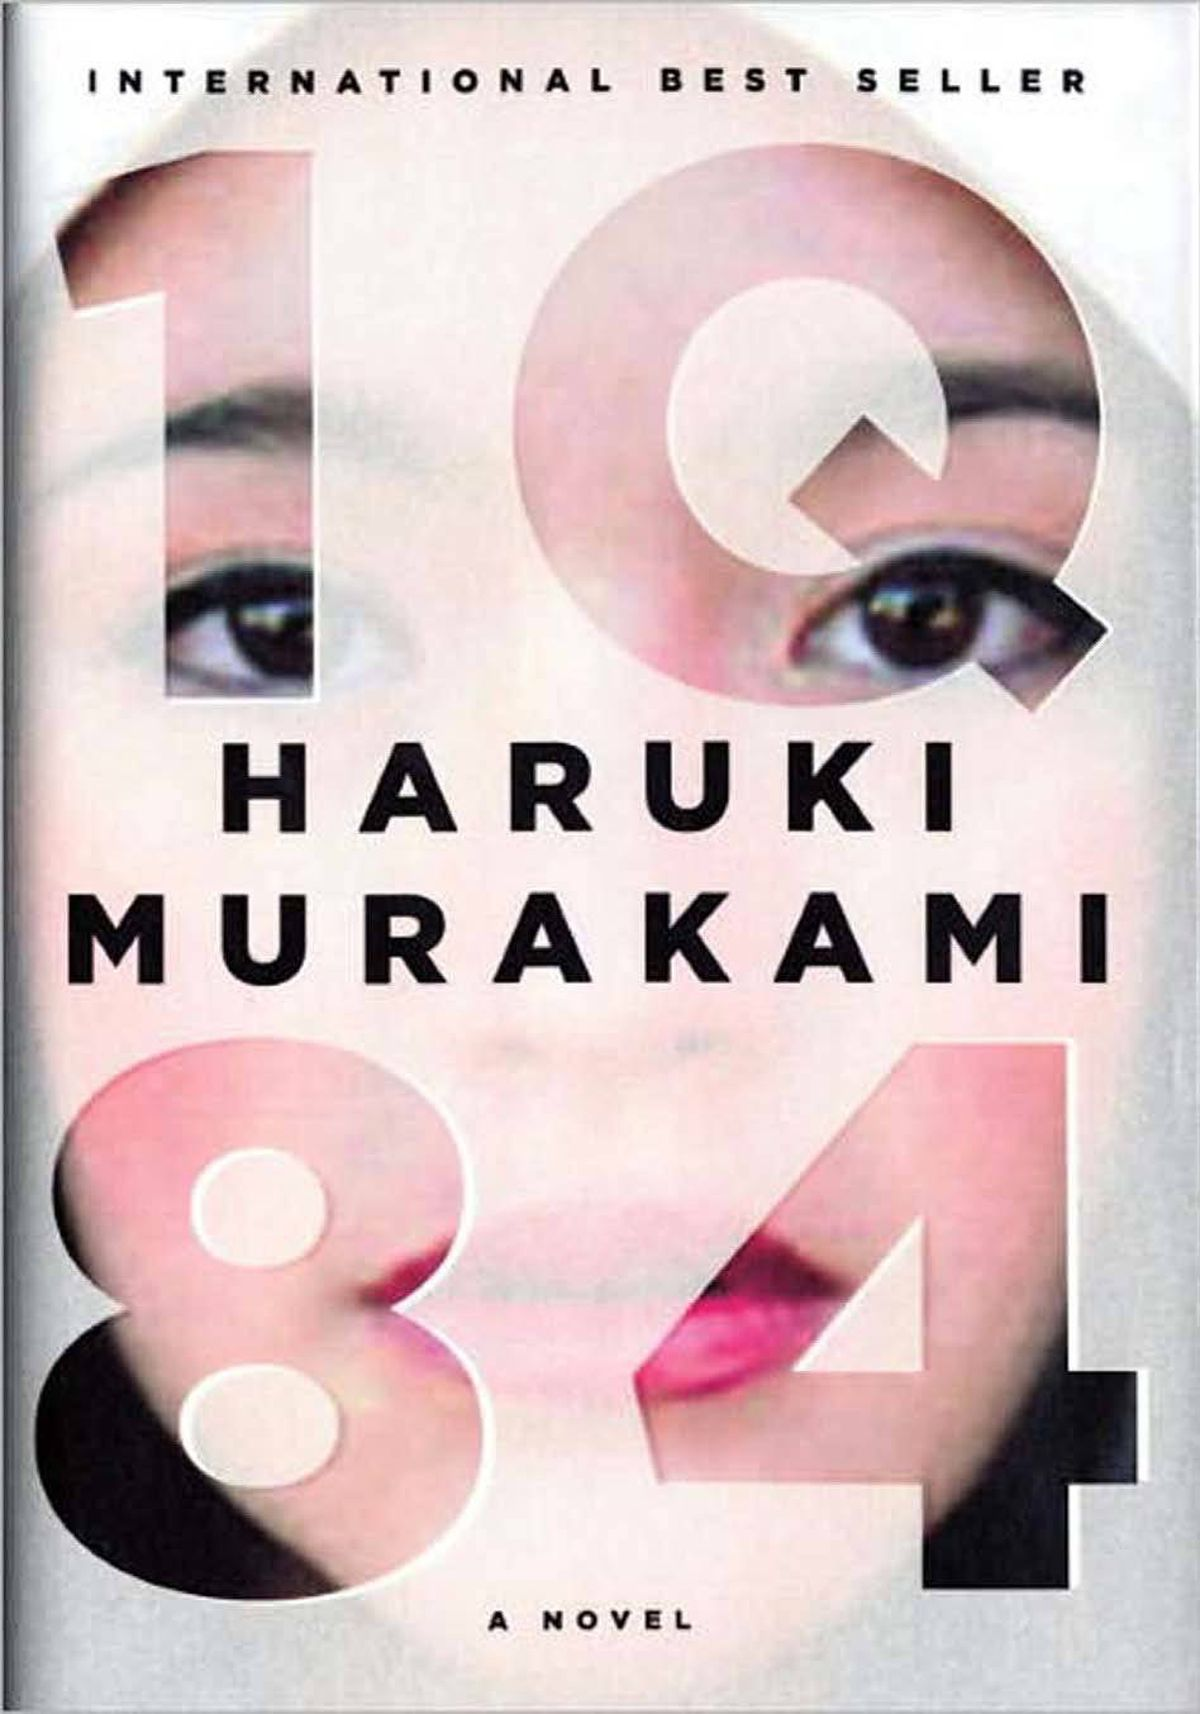 1Q84 By Haruki Murakami Translated by Jay Rubin and Philip Gabriel (Knopf Canada) In 1984 Tokyo, Aomame is a fitness instructor, massage therapist and assassin, killing men who commit violence against women. Tengo is an aspiring novelist and amiable loner. All they really need, it turns out, is each other. This colossus is expansive, enthralling, but also an over-long and occasionally exasperating foray into the lure of fanatical beliefs. – Charles Foran